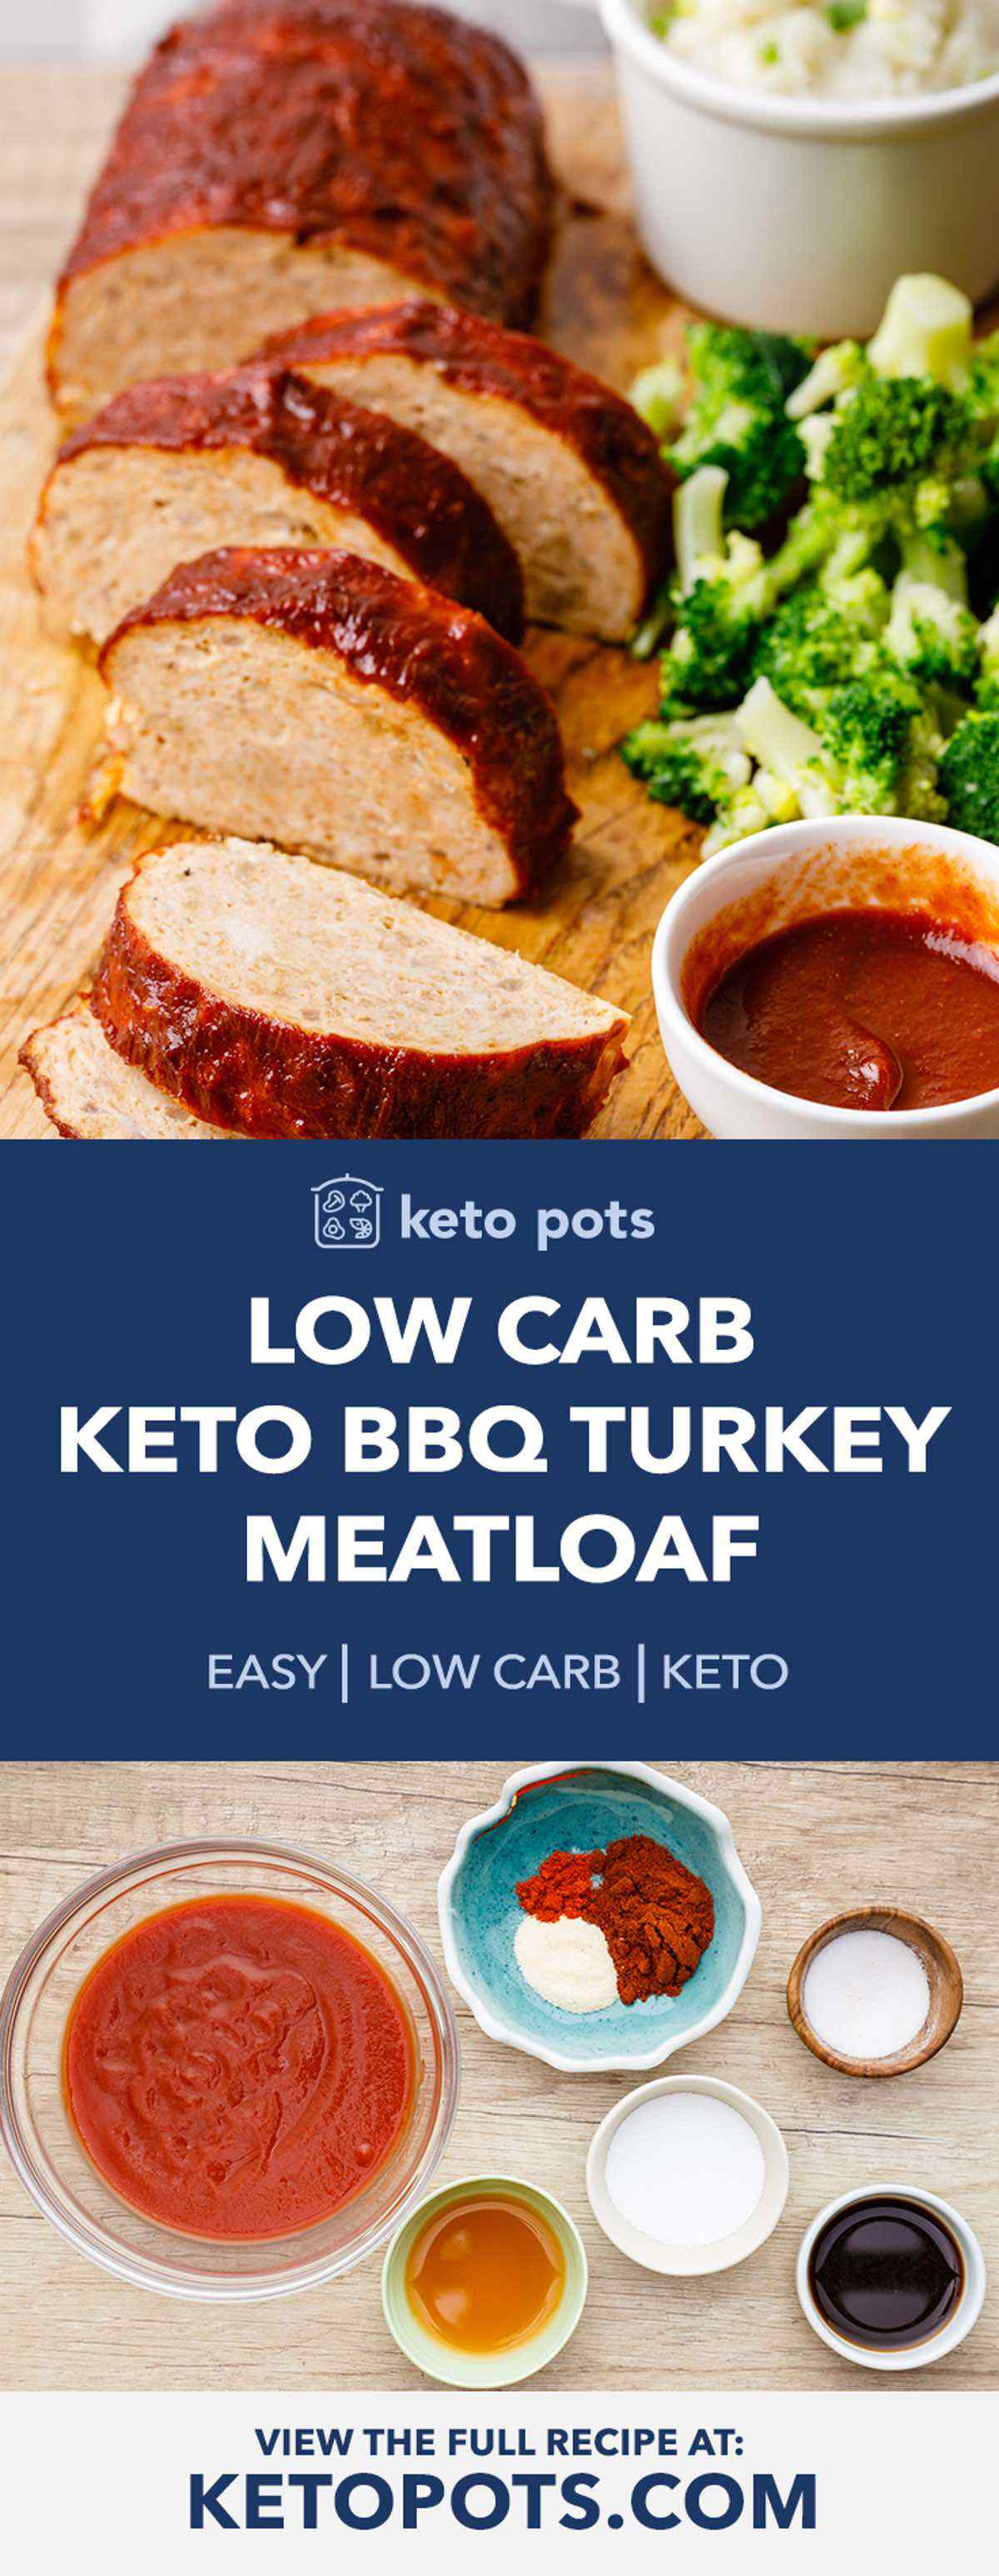 Low Carb Keto Turkey Meatloaf